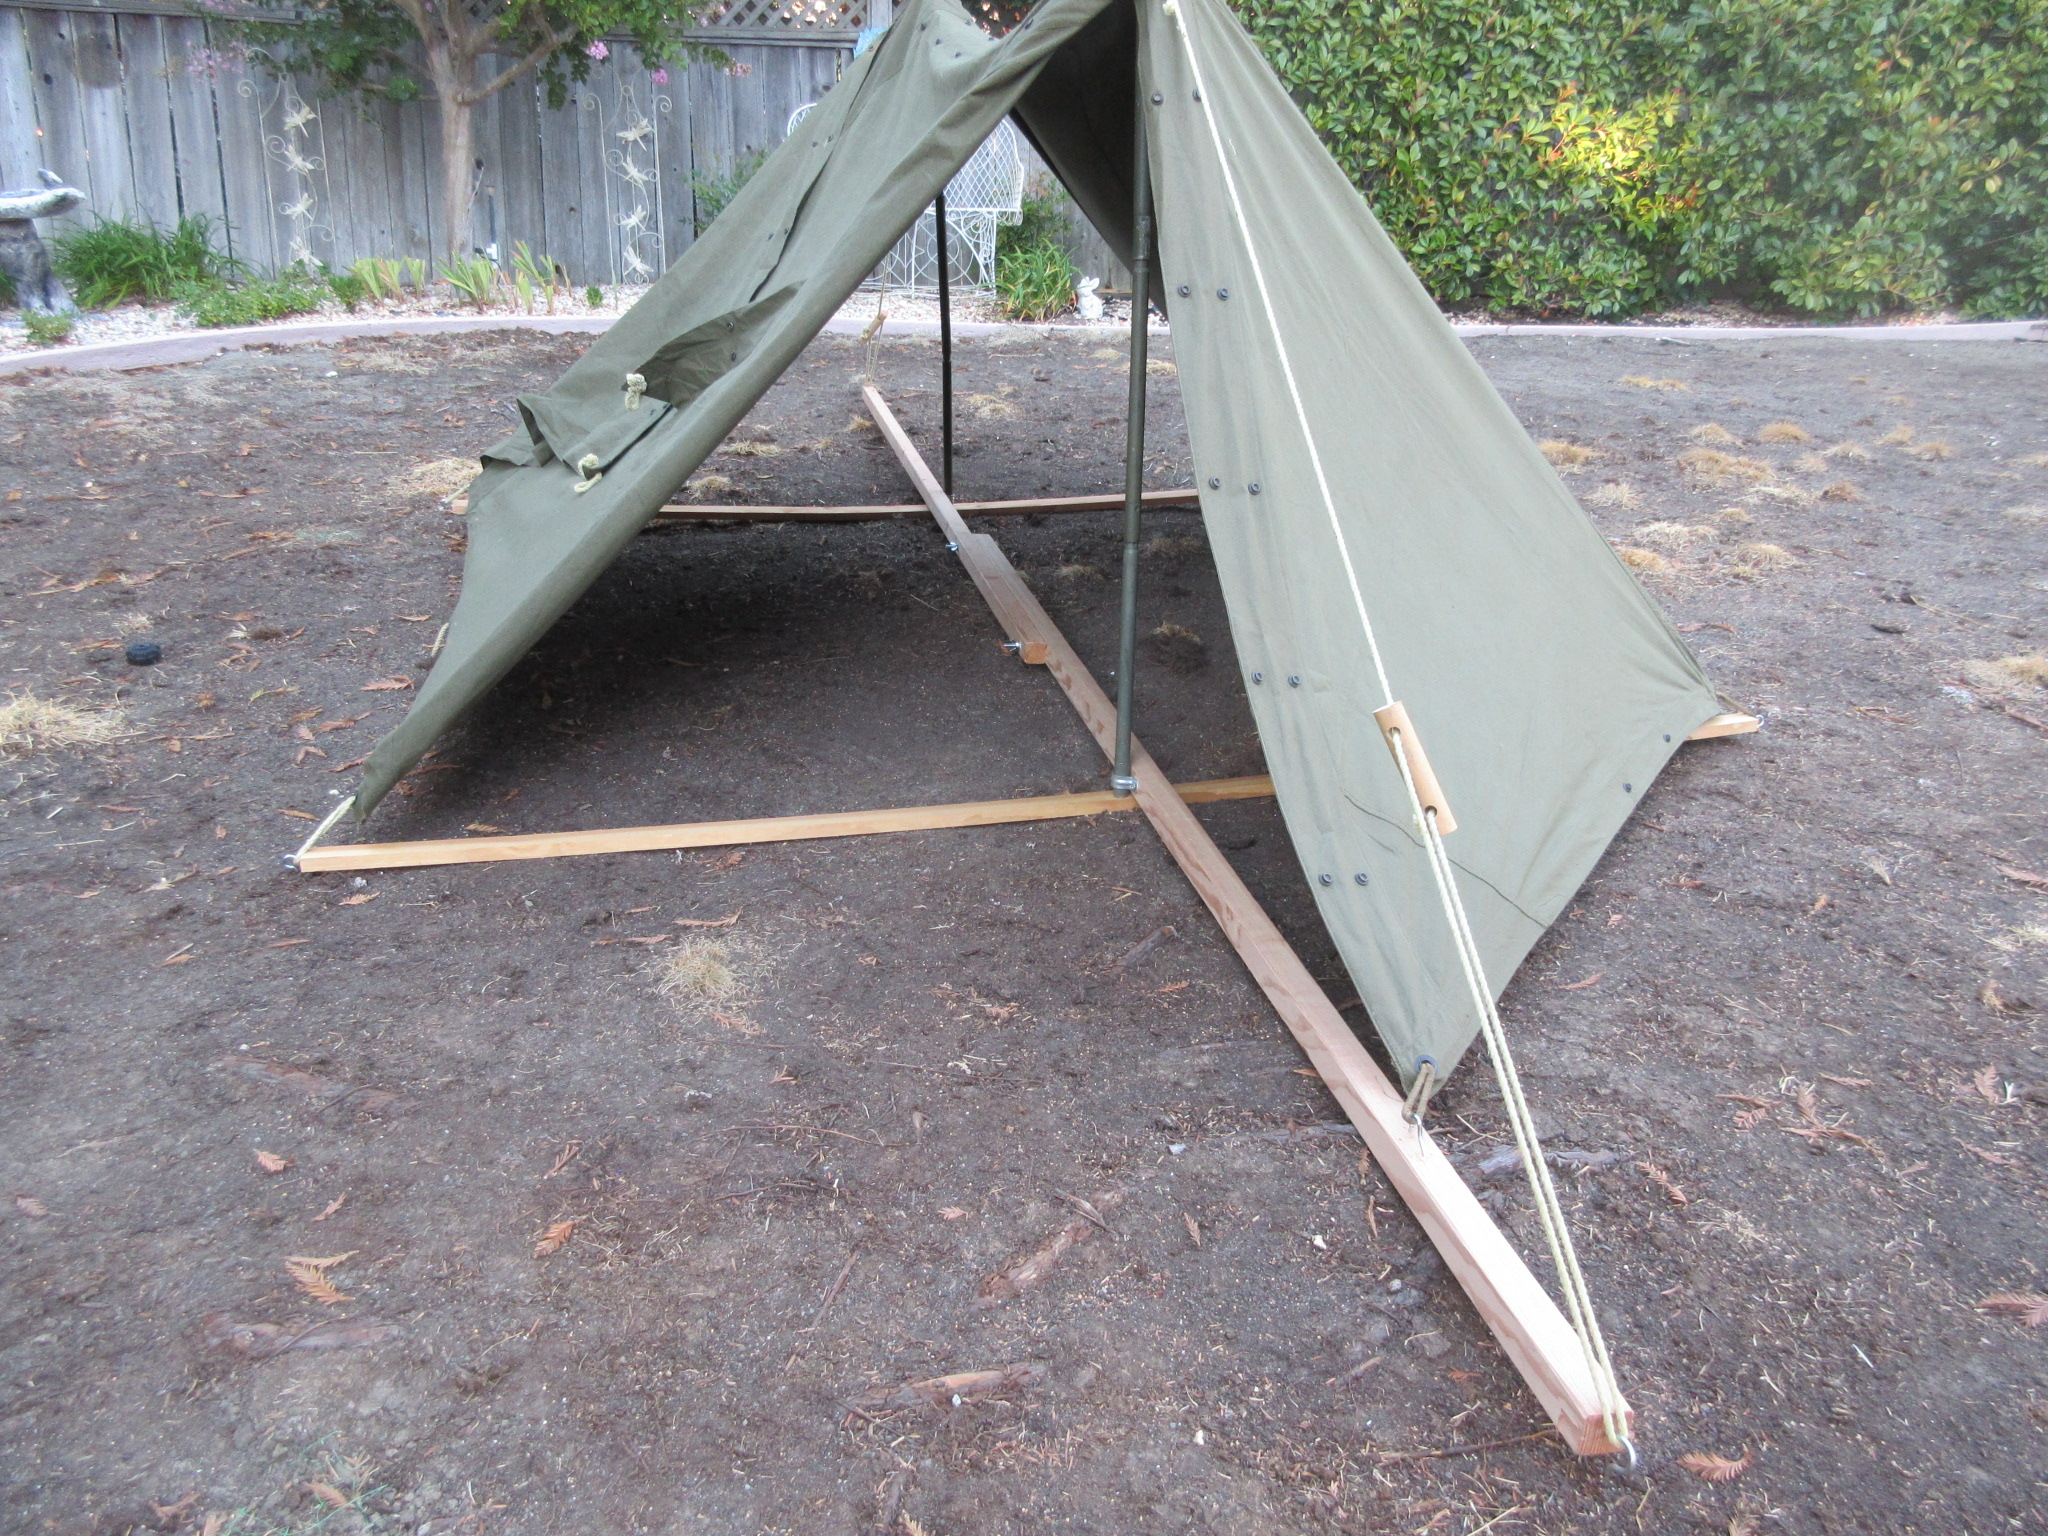 Shelter Half tent on wood frame for displays